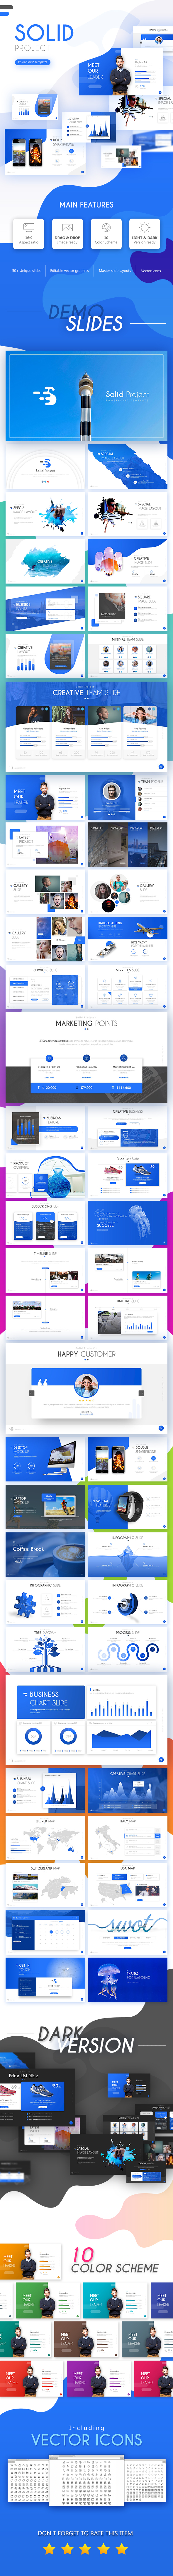 GraphicRiver Solid Project PowerPoint Template 21021232